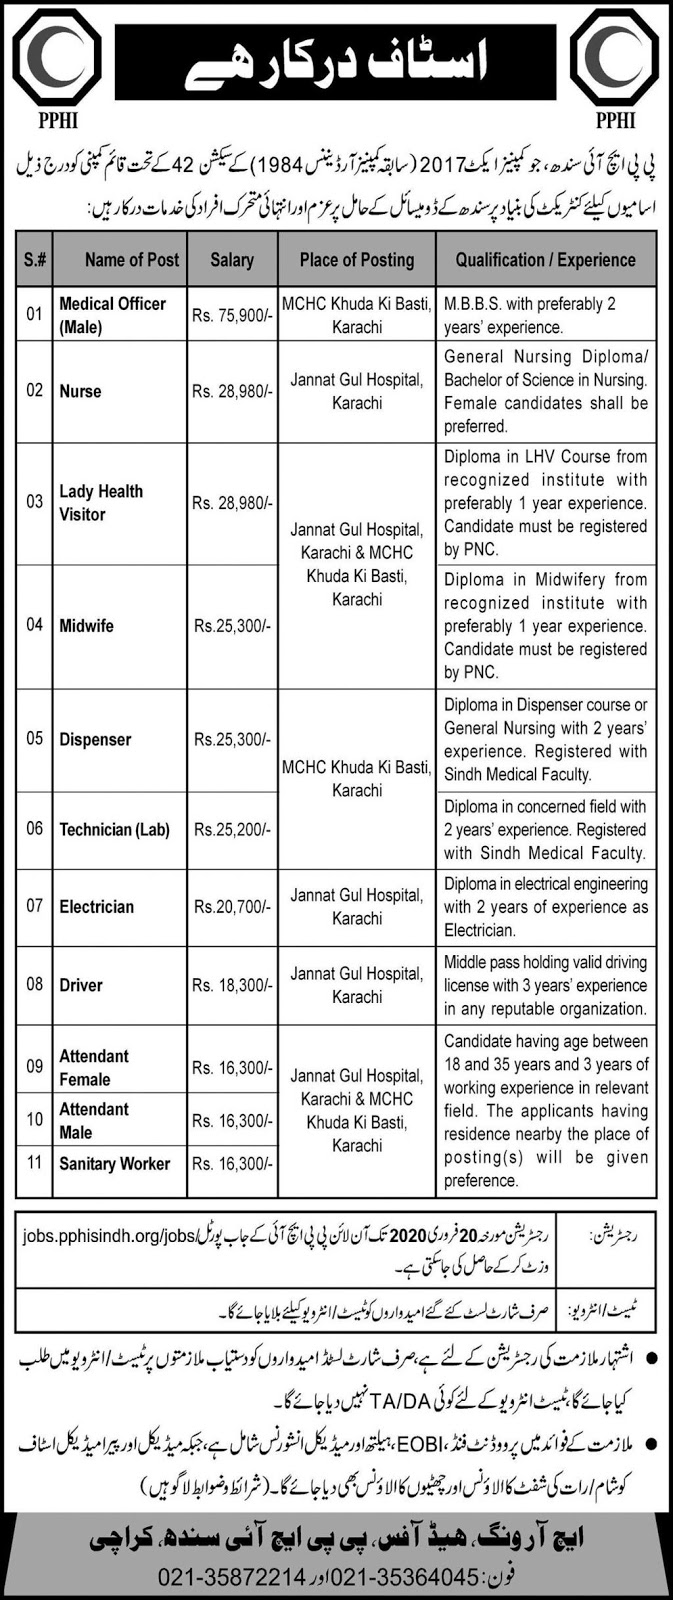 Jobs in PPHI Sindh Latest Advertisement 2020